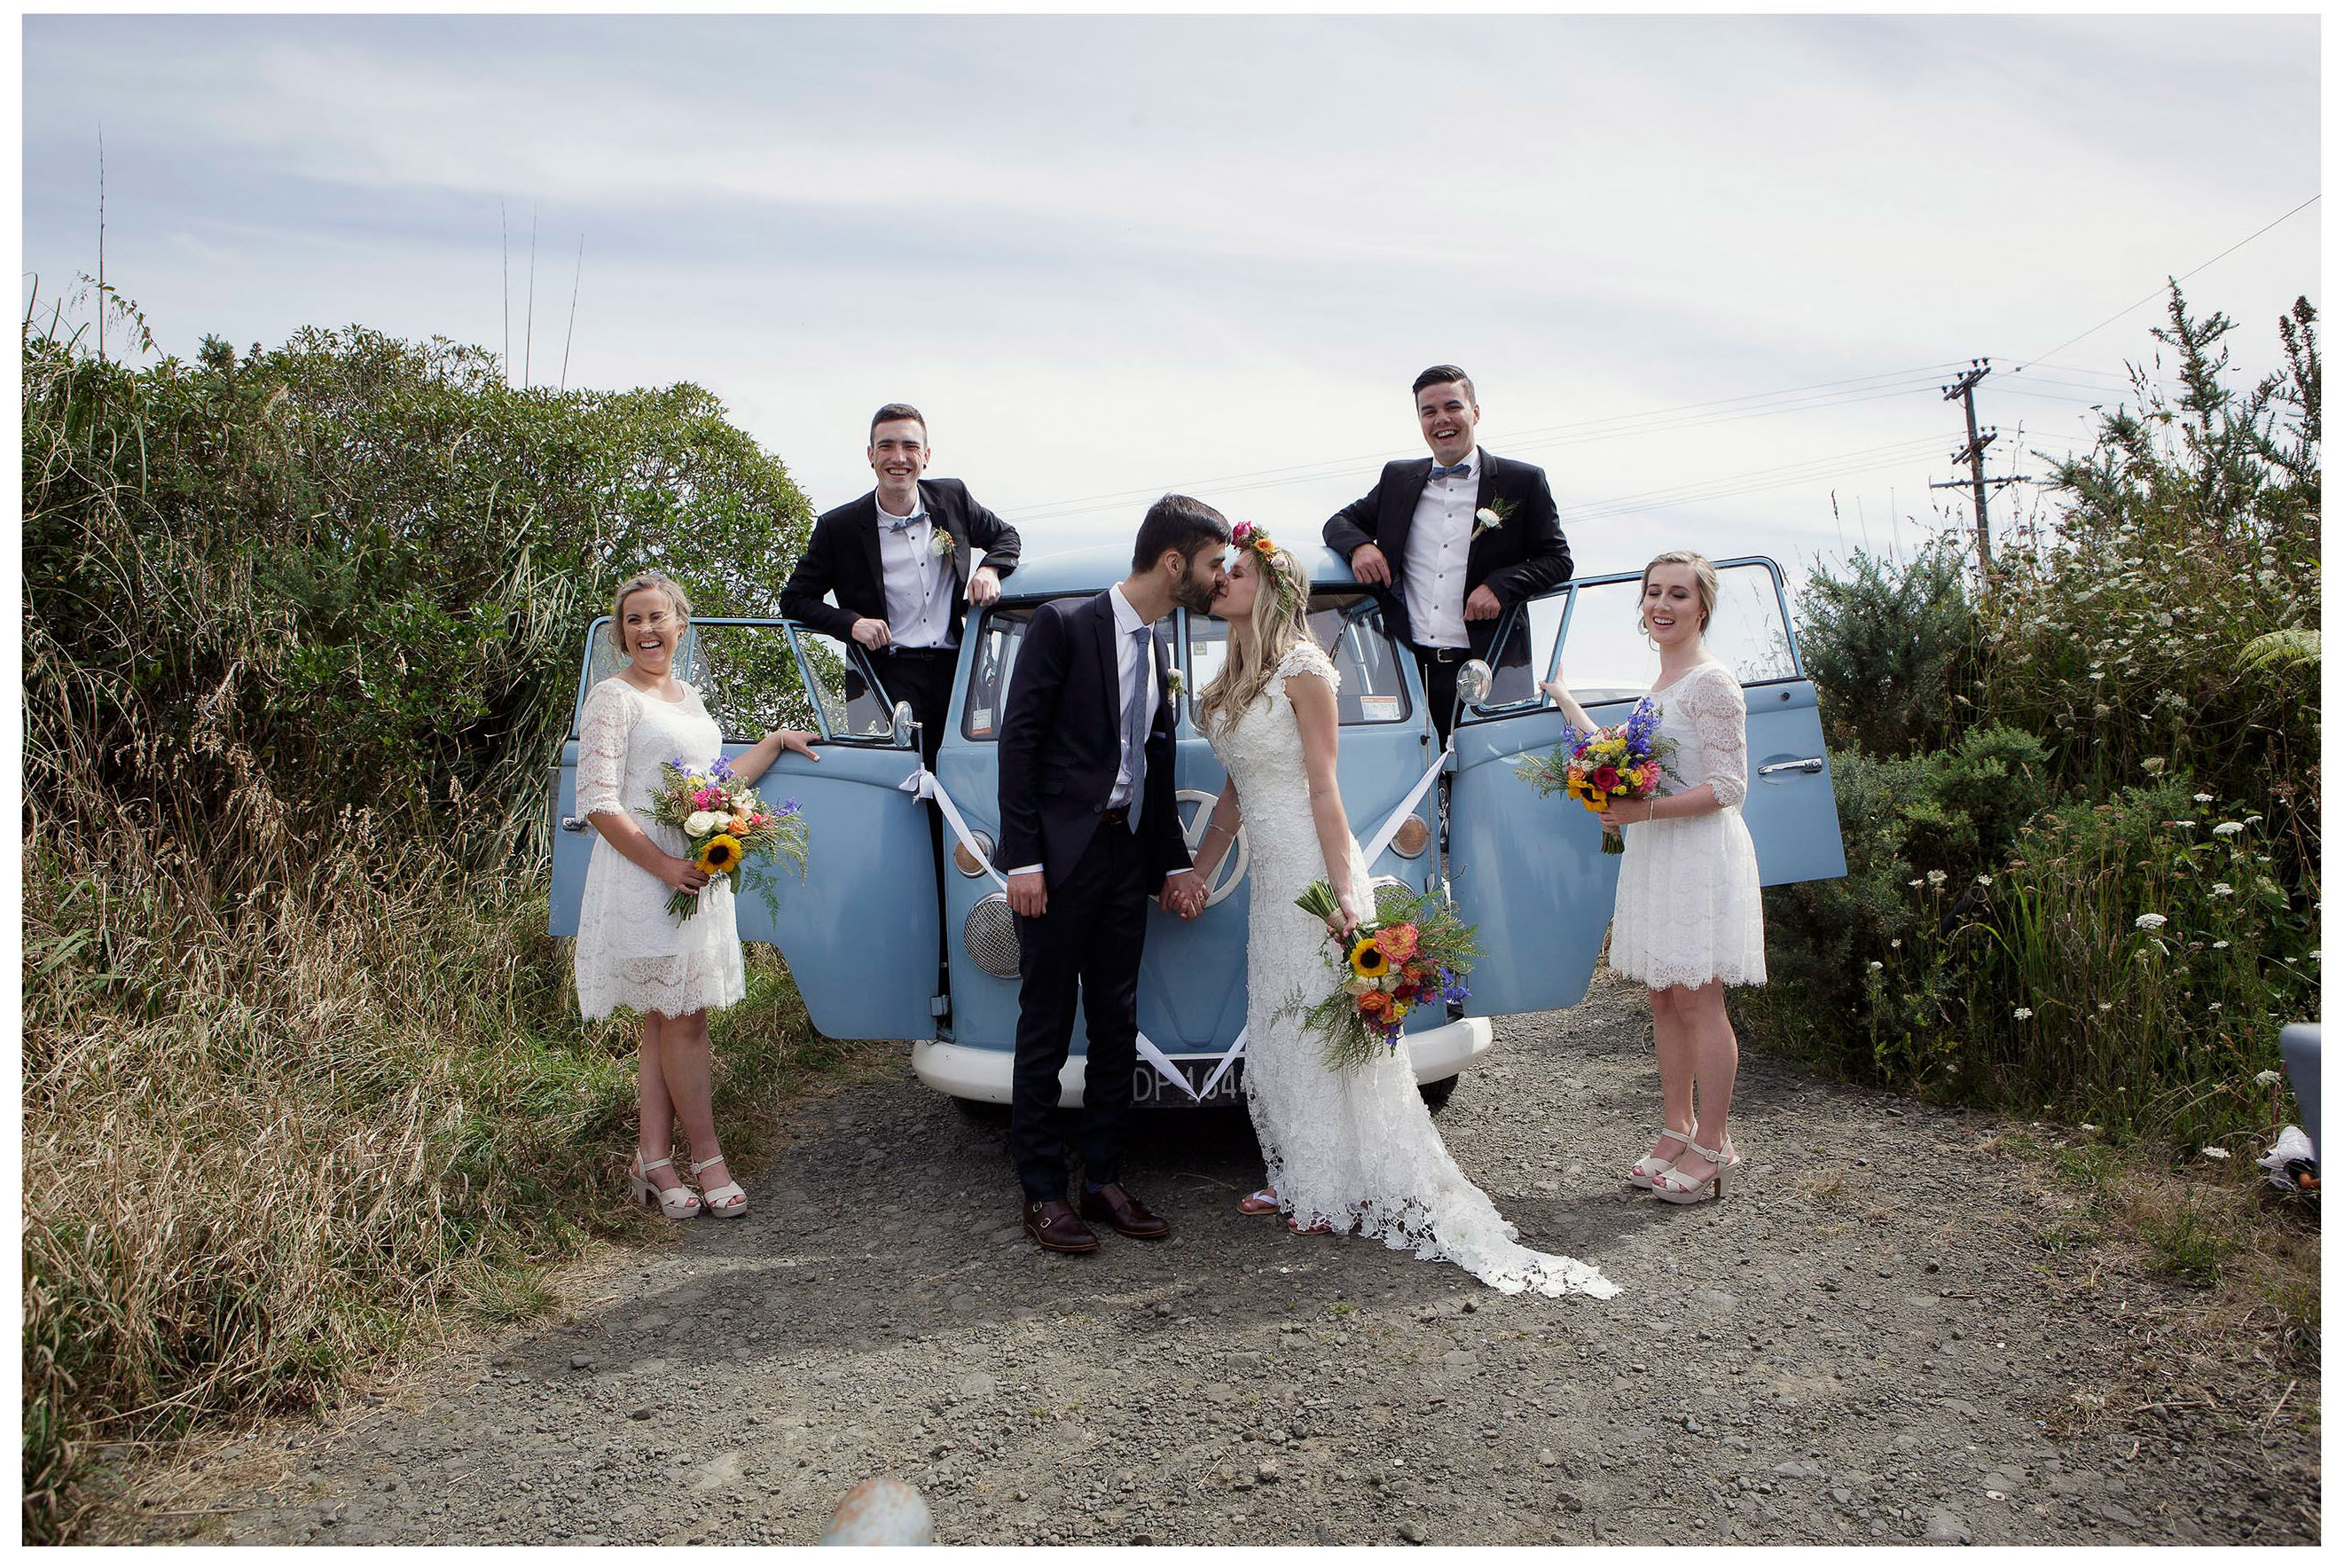 VW Kombi van wedding photo by Chris Loufte Auckalnd